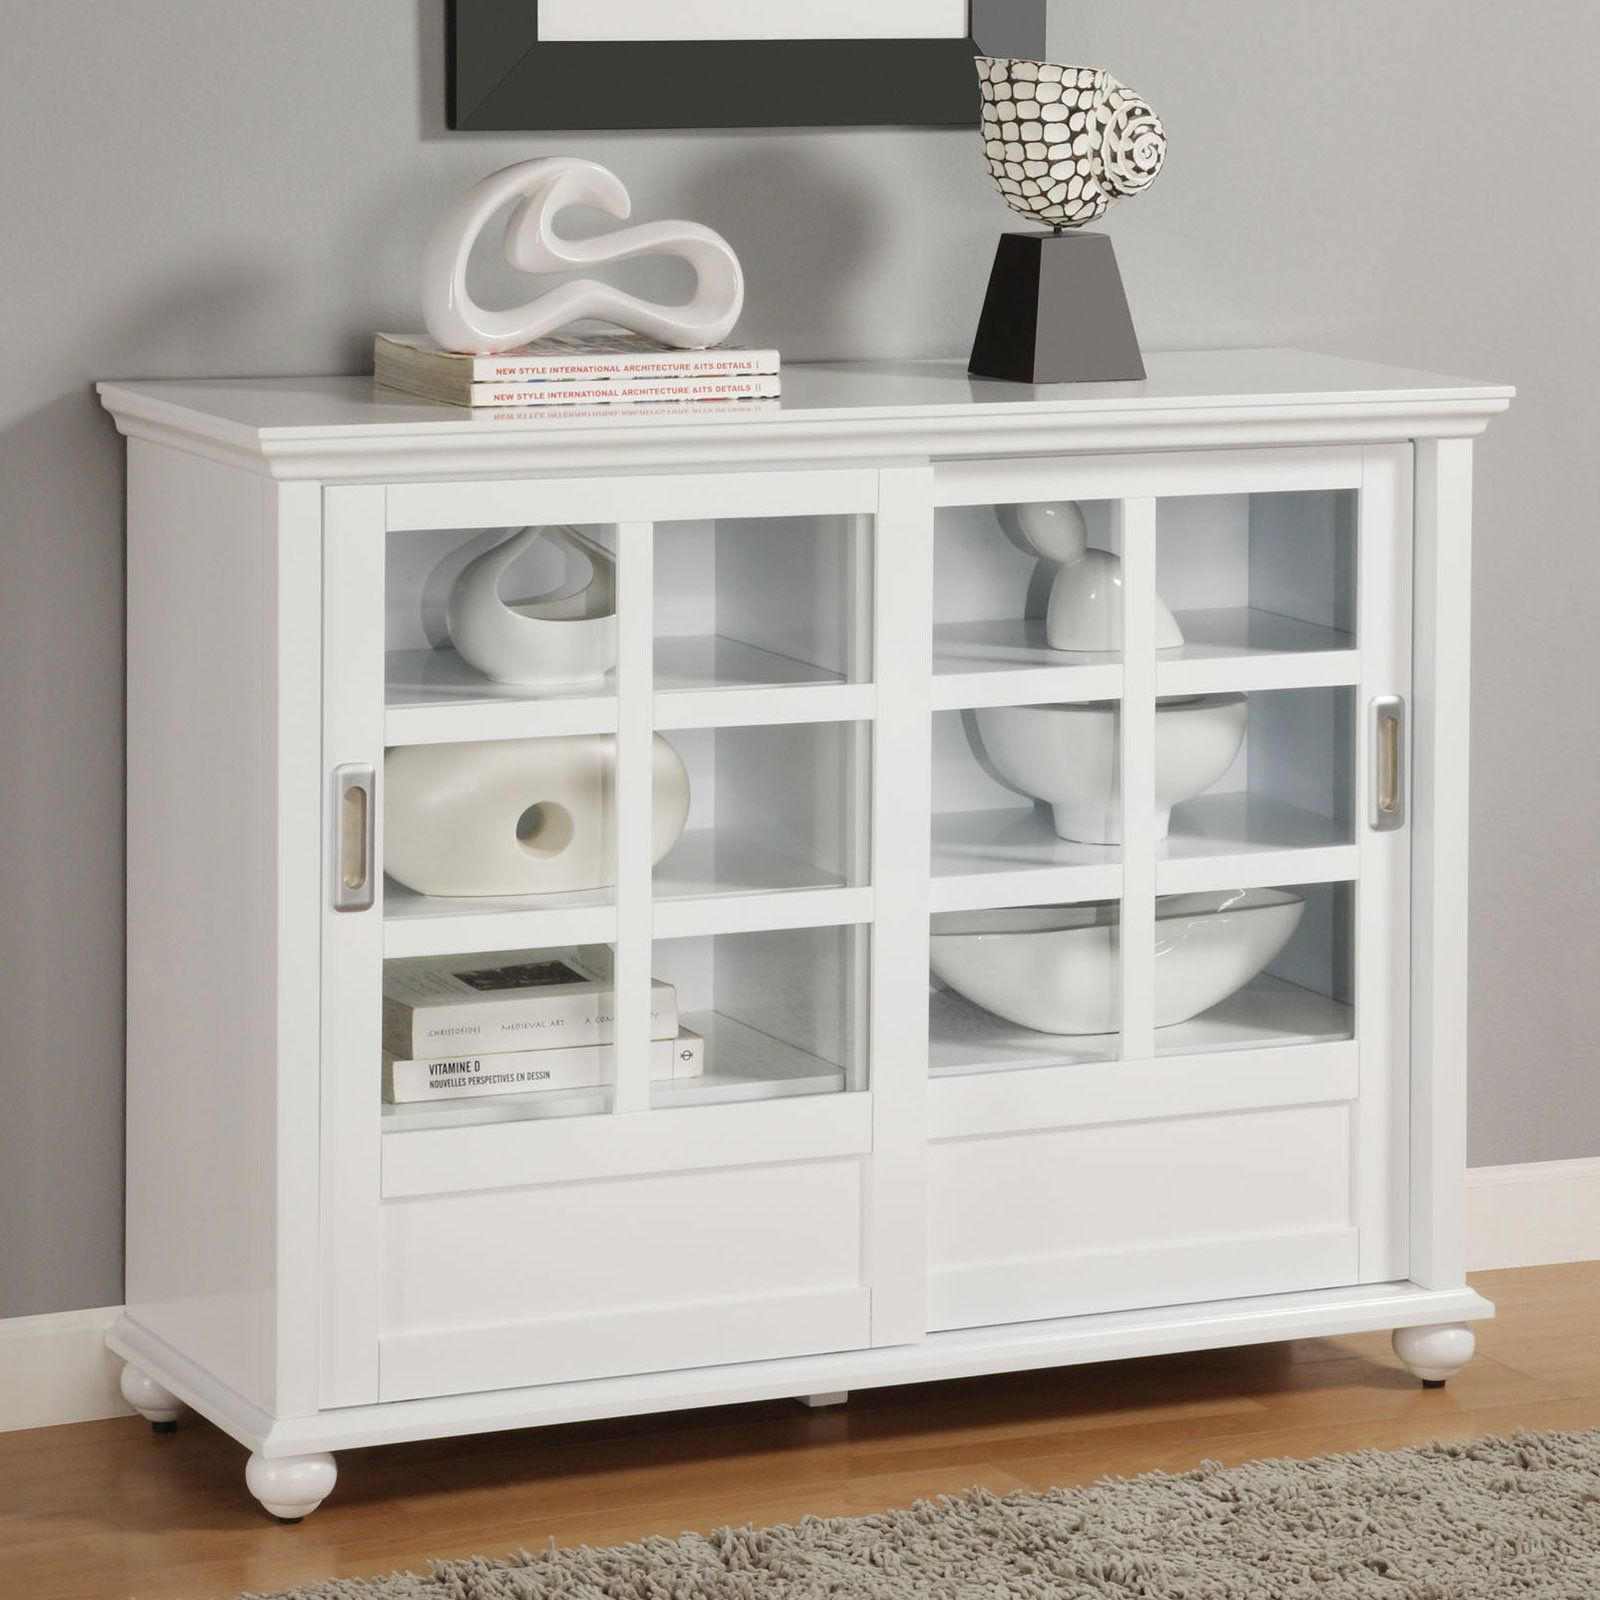 Horizontal Bookcase With Doors Best Paint For Wood Furniture